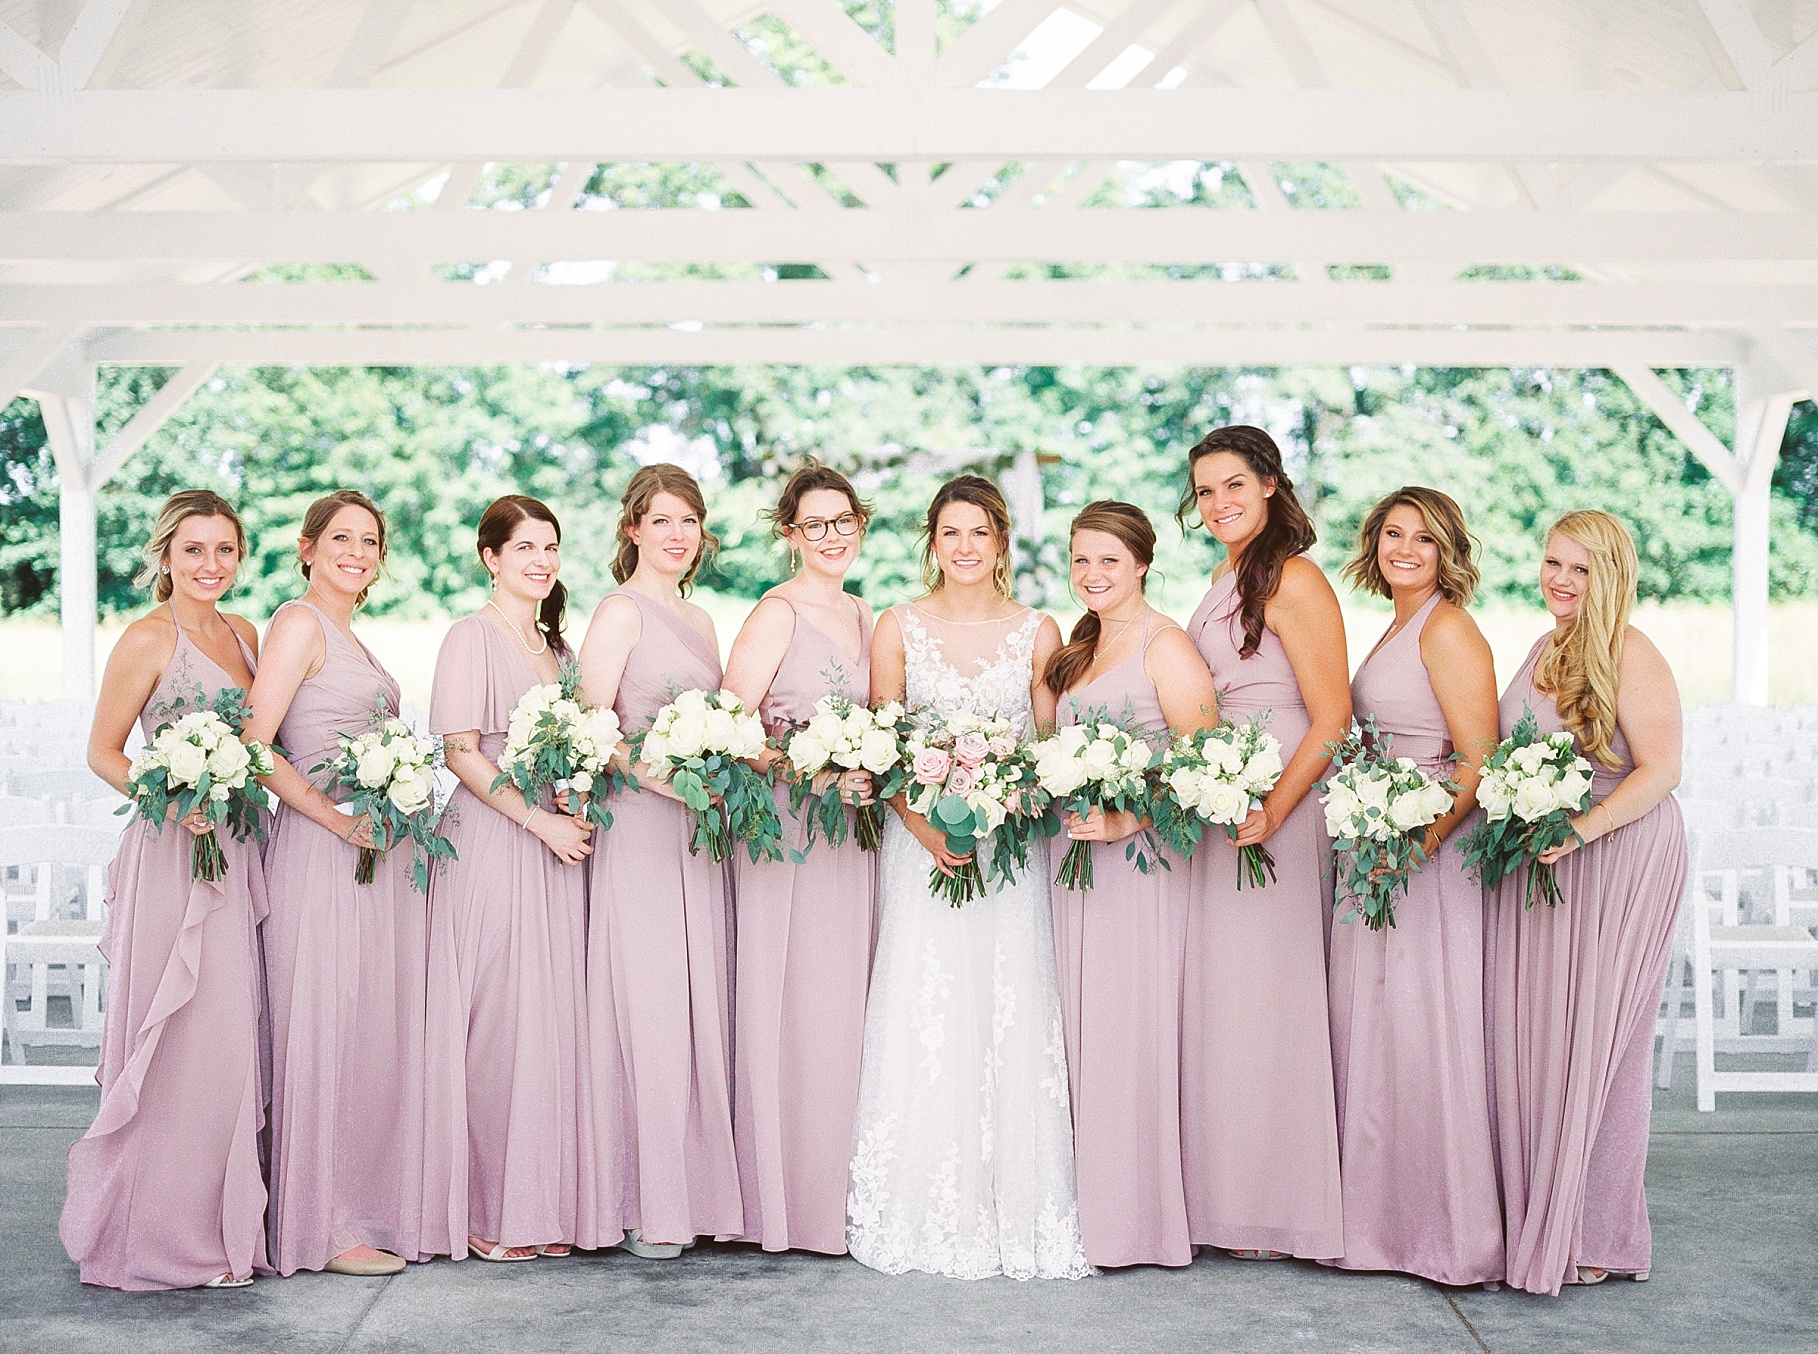 Classic Quartz, White, and Deep Green Wedding at Emerson Fields by Kelsi Kliethermes Photography Best Columbia Missouri and Maui Hawaii Wedding Photographer_0033.jpg